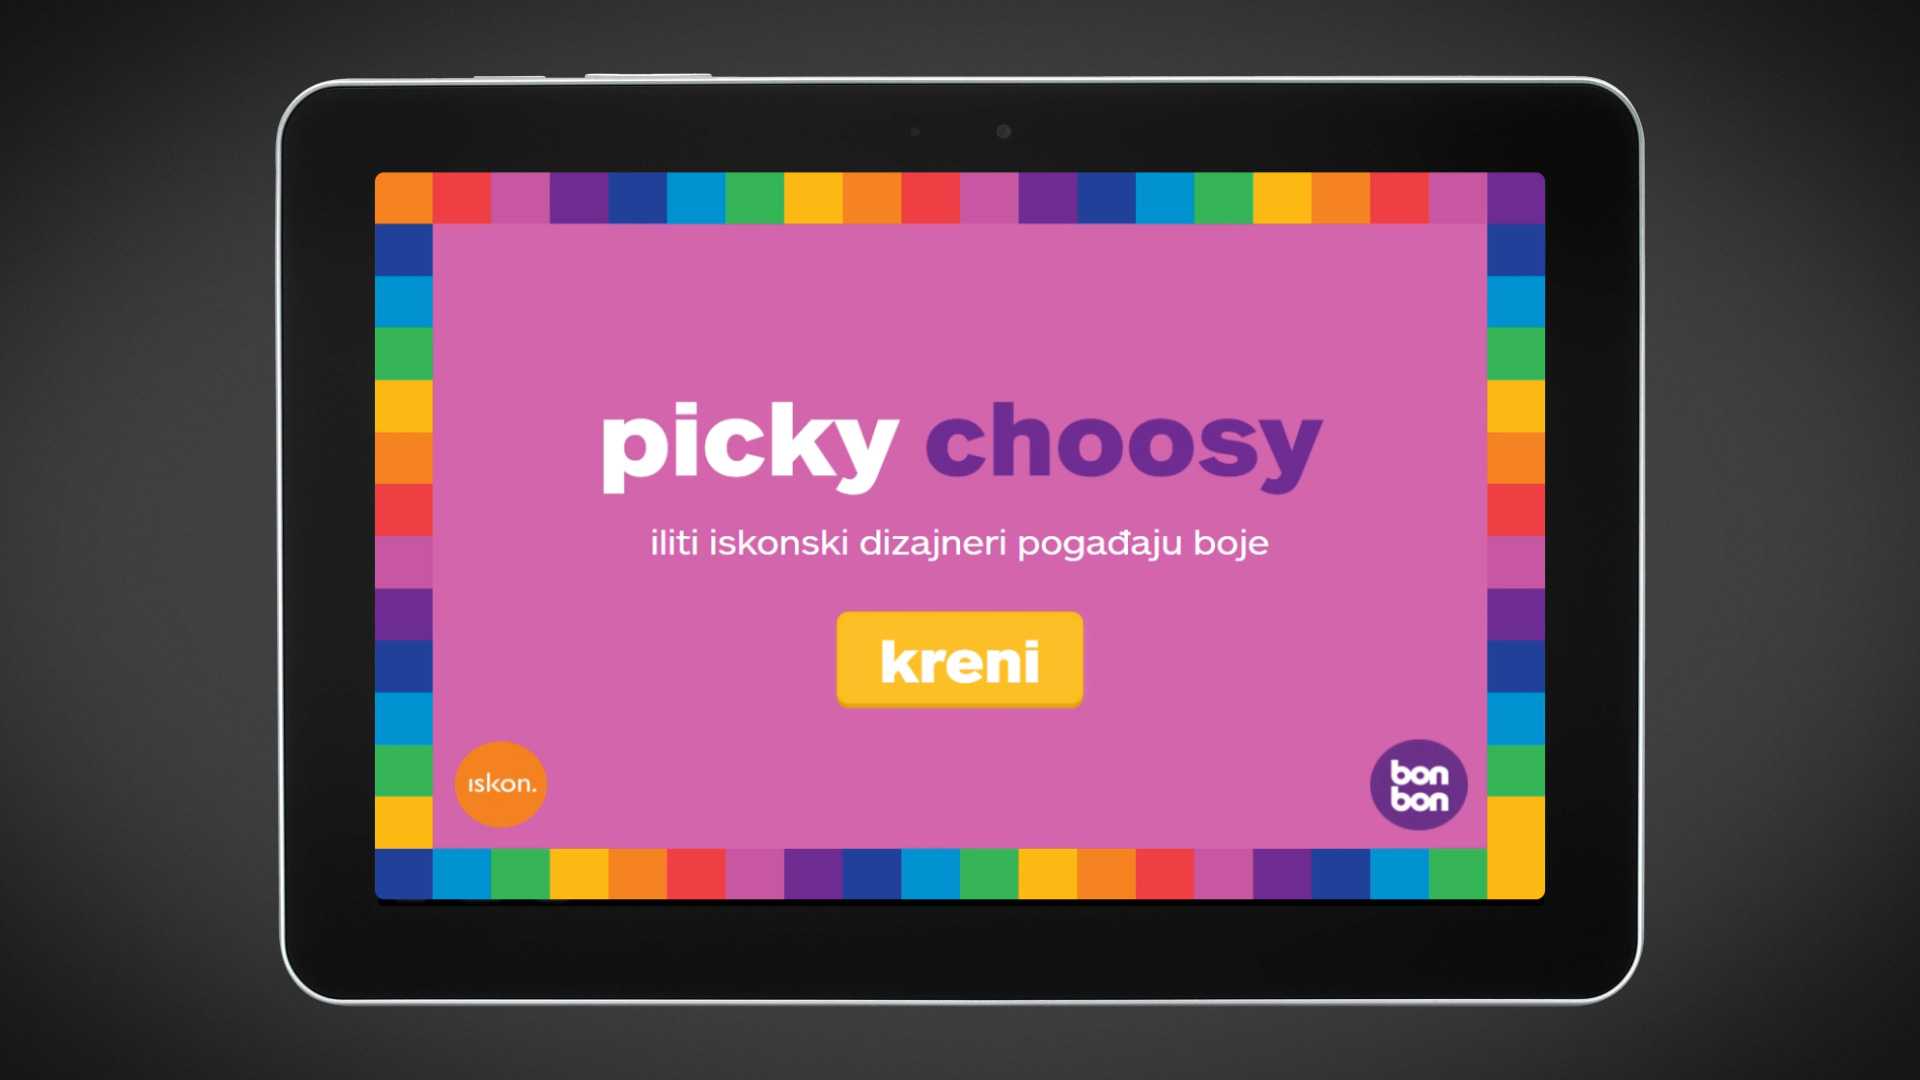 pickychoosy-interactive-2016_1